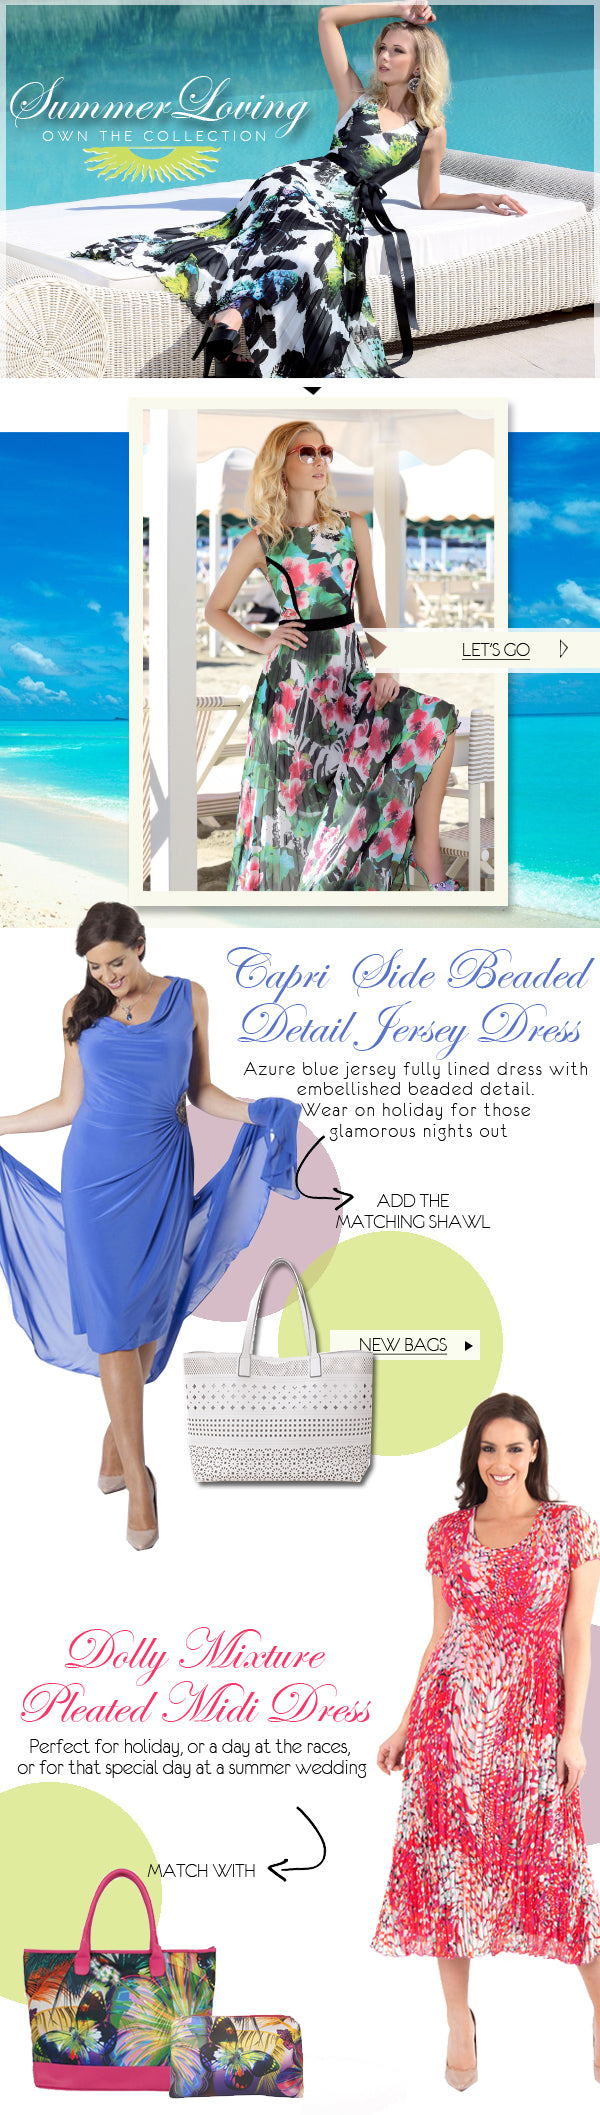 Summer Loving - Own the Collection.  Capri Side Beaded Detail Jeresy Dress - Azure blue jersey fully lined dress with embellished beaded detail. Wear on holiday for those glamorous nights out. Dolly Mixture Pleated Midi Dress - Perfect for holiday, or a day at the races, or for that special day at a Summer wedding.